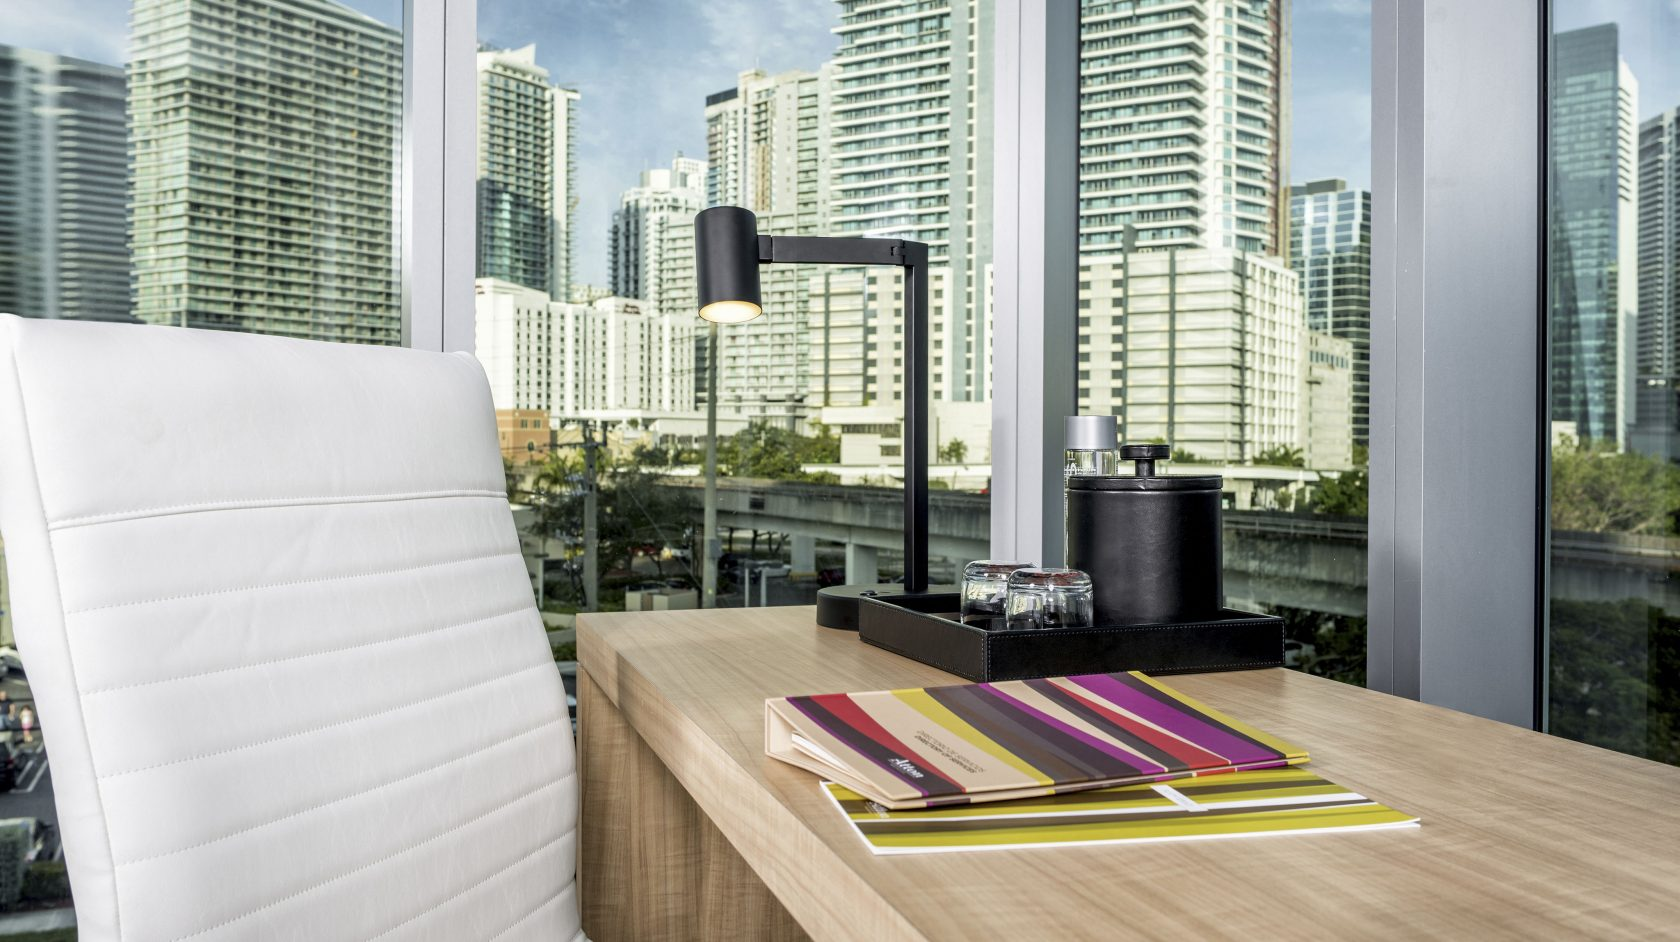 guest room work desk at Atton Brickell Miami